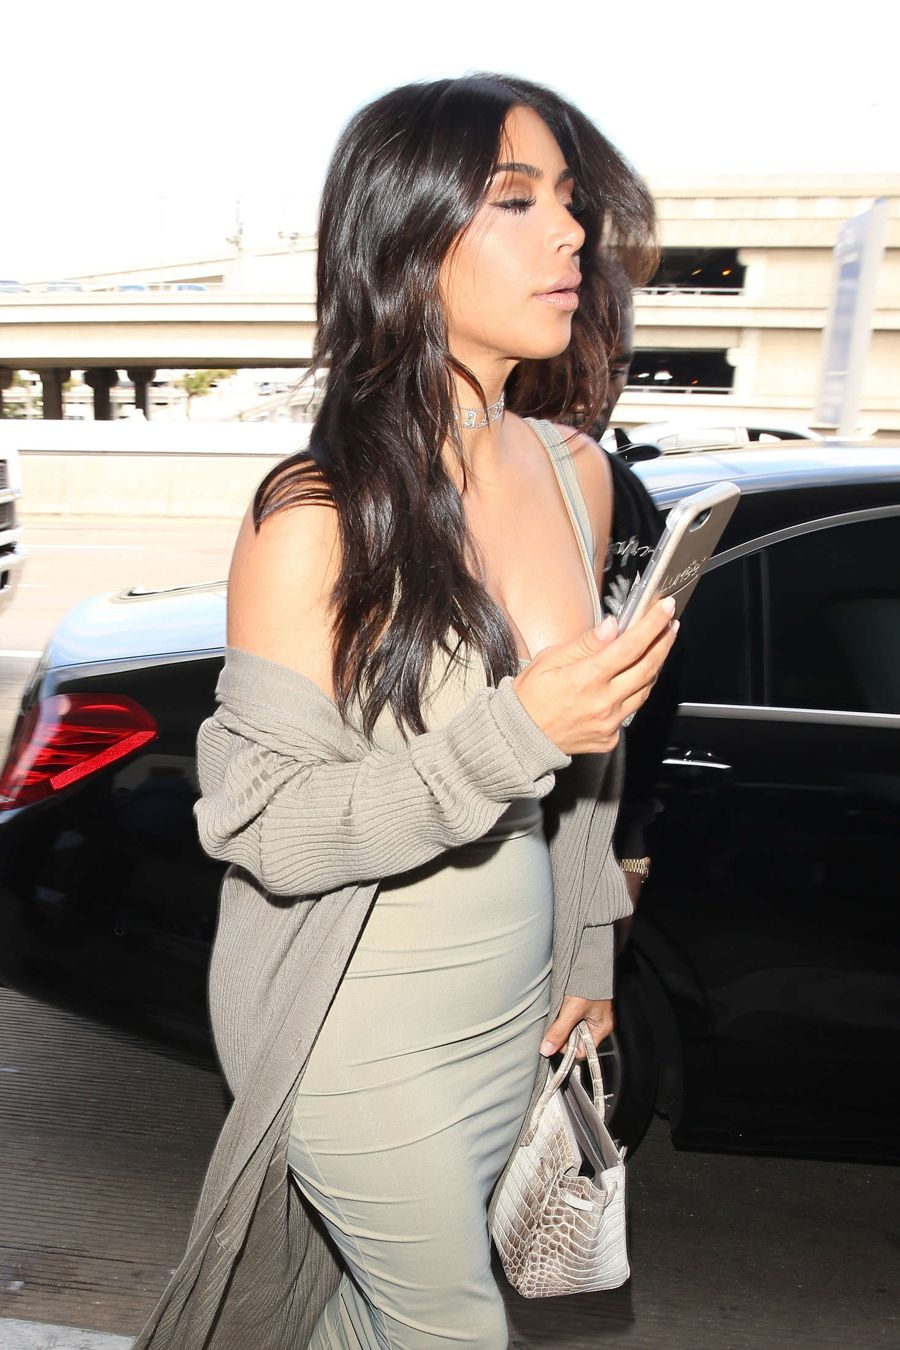 Kim Kardashian in an Eye-Popping Display at LAX Airport